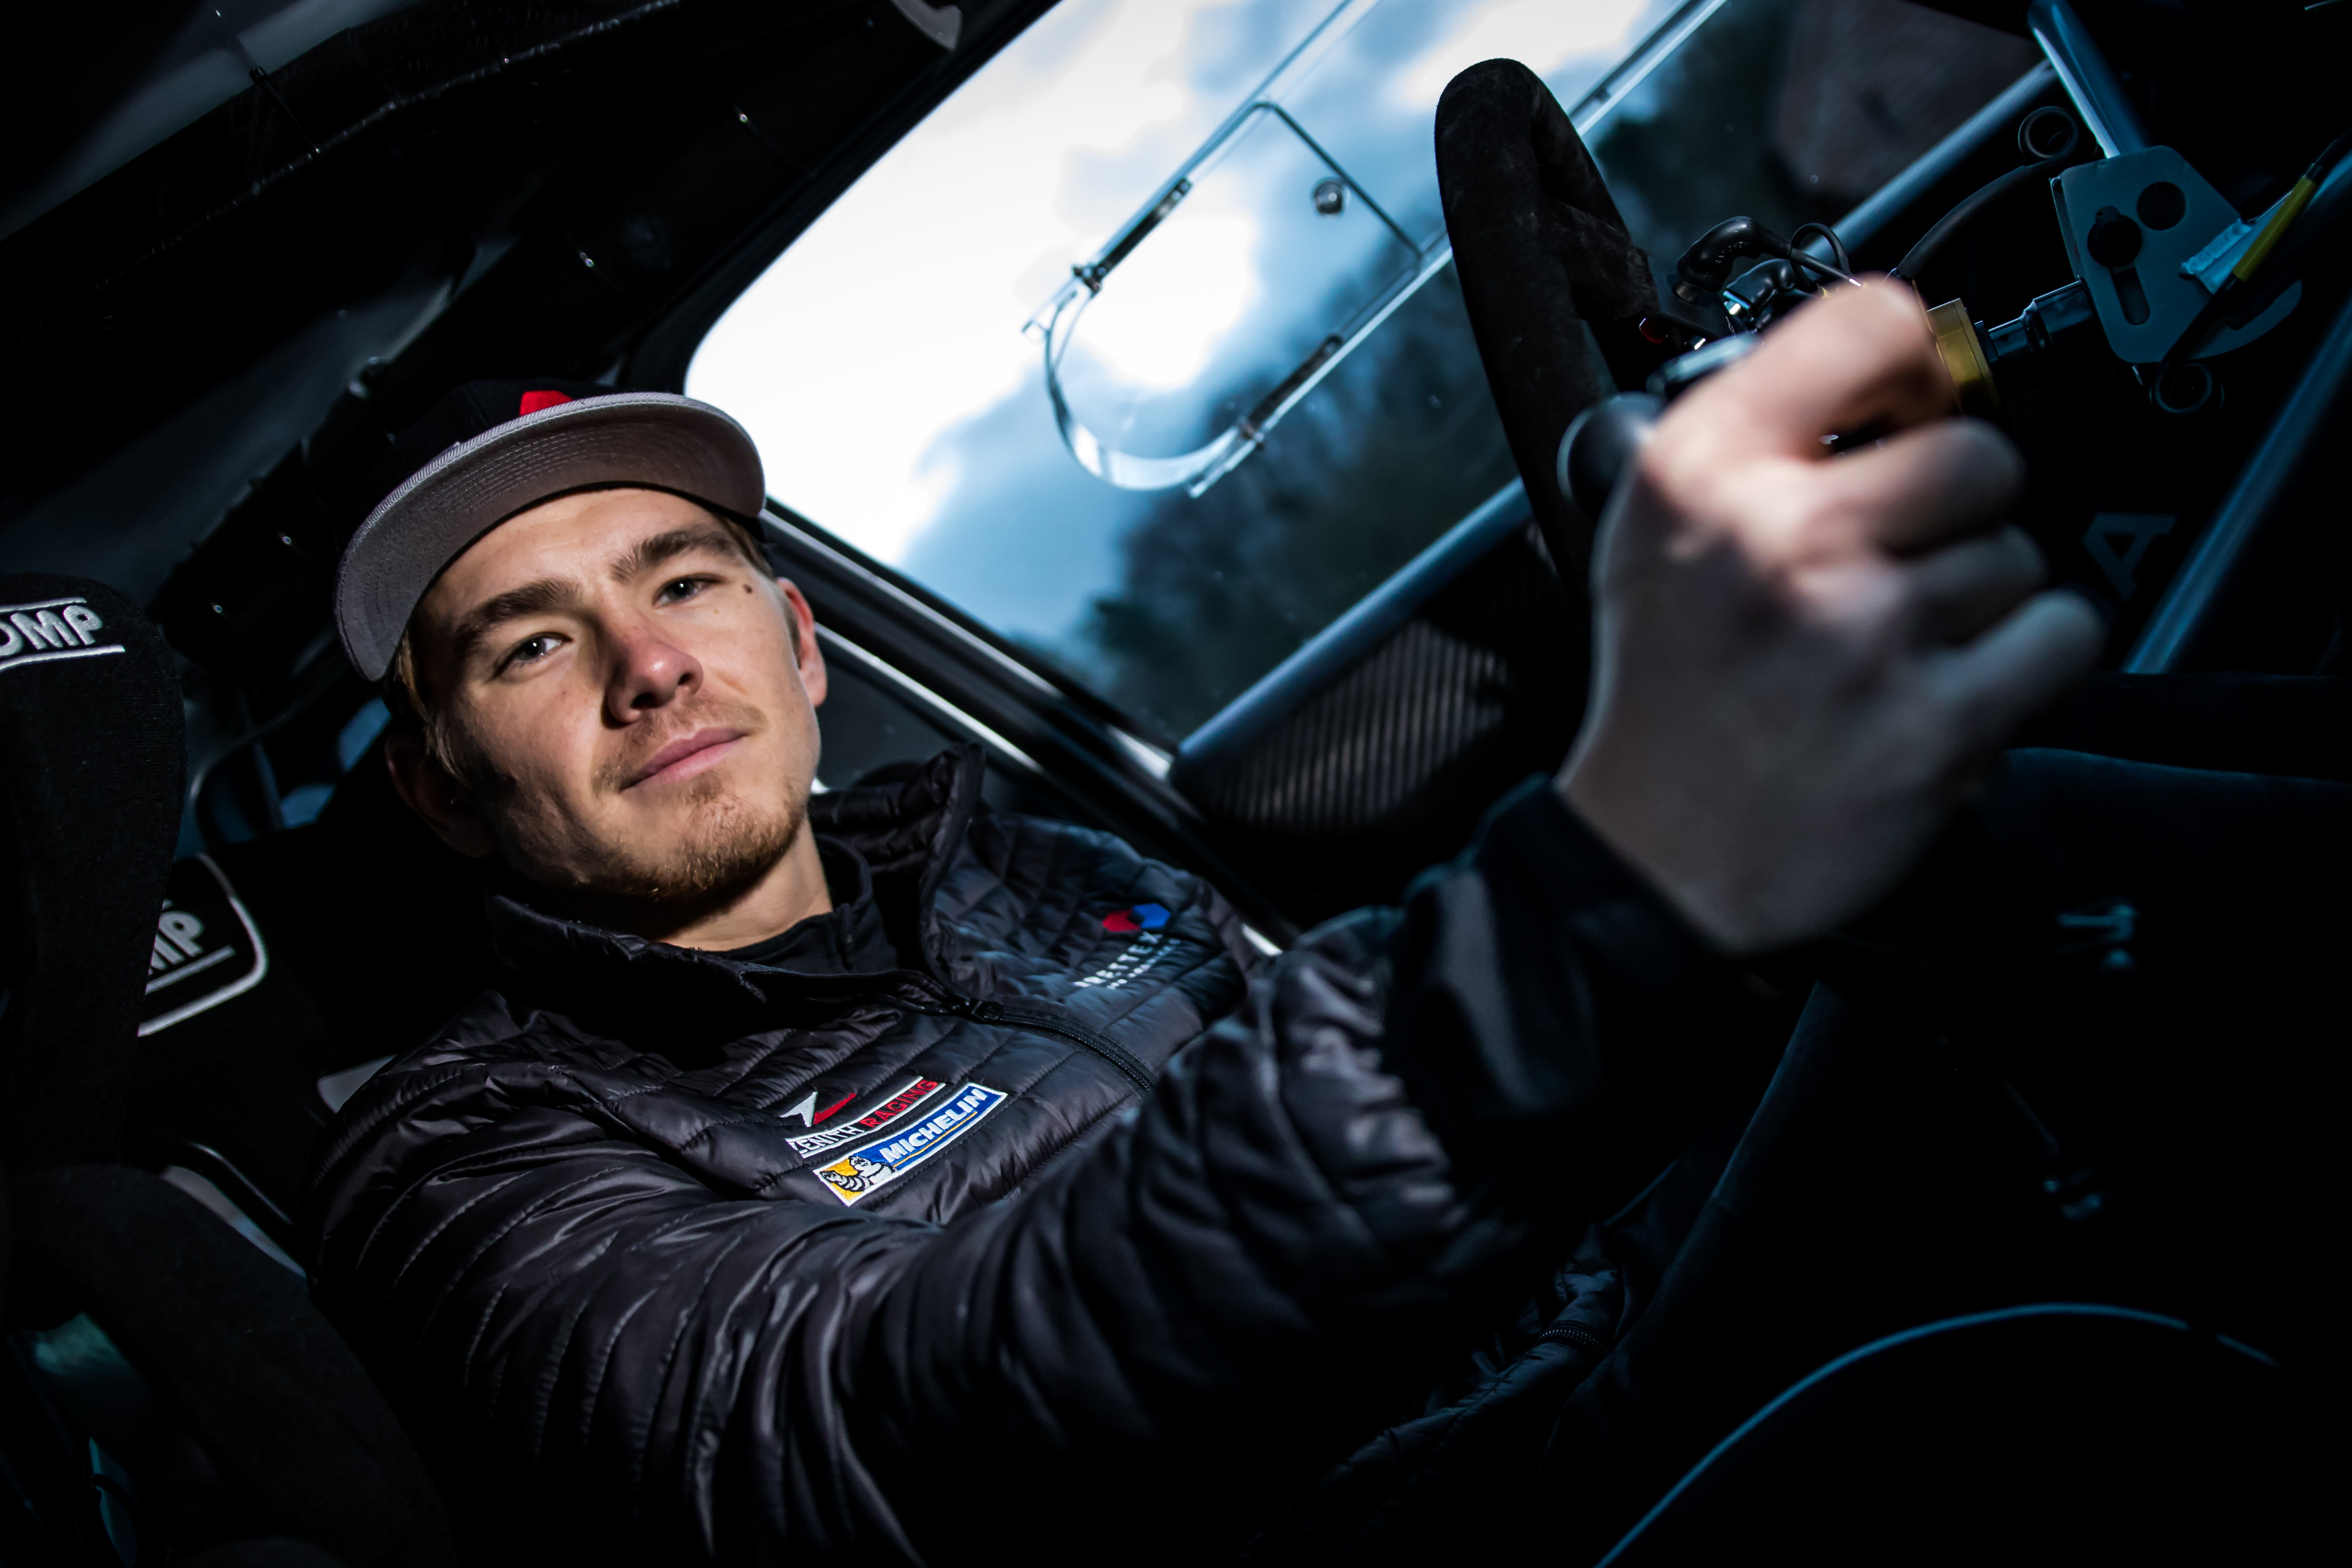 Rhys Yates - In the driving seat